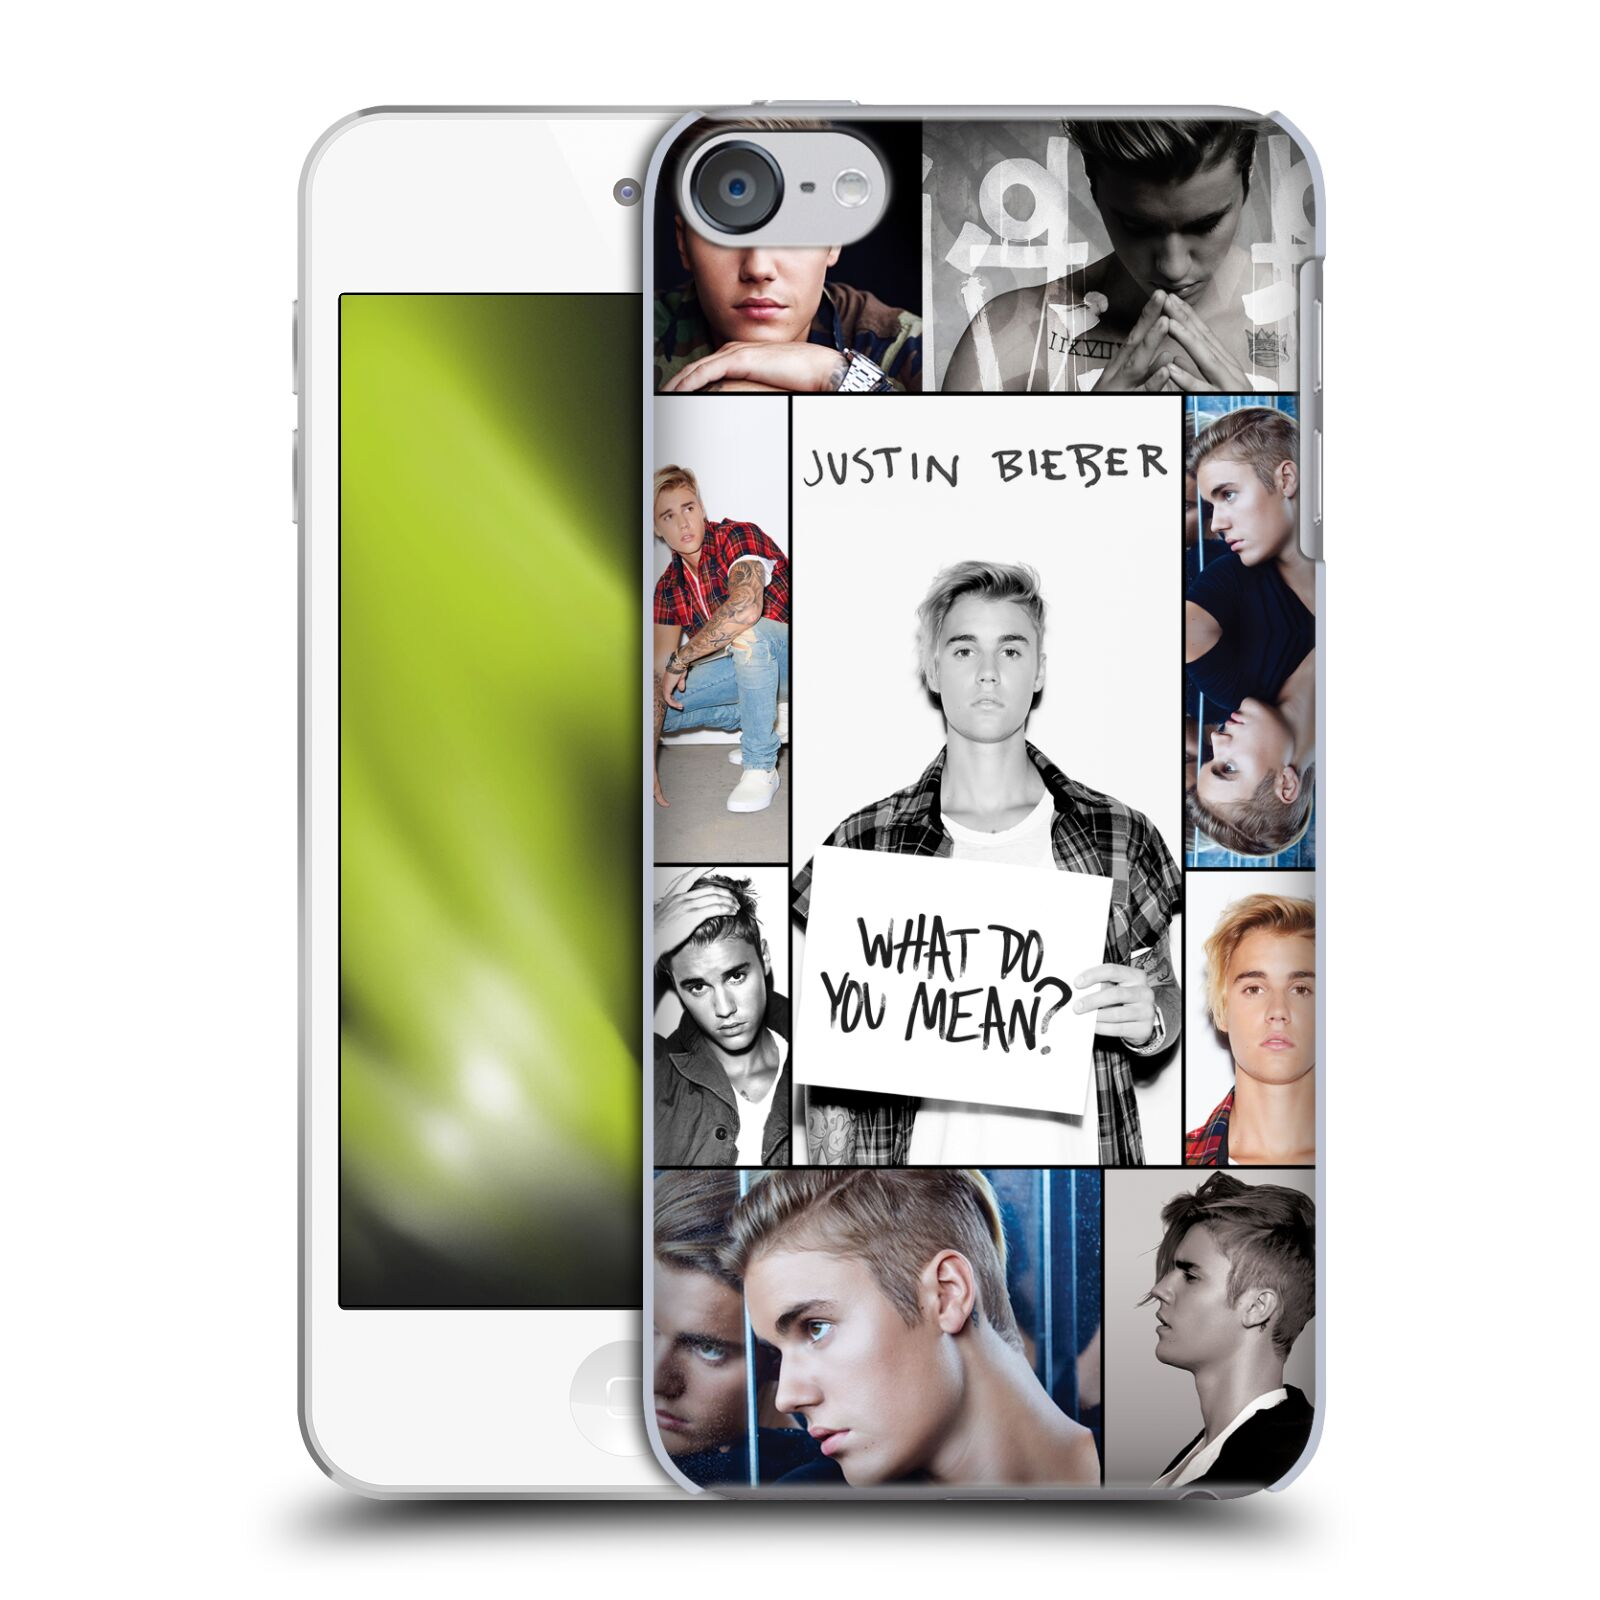 OFFICIAL-JUSTIN-BIEBER-KEY-ART-HARD-BACK-CASE-FOR-APPLE-iPOD-TOUCH-MP3